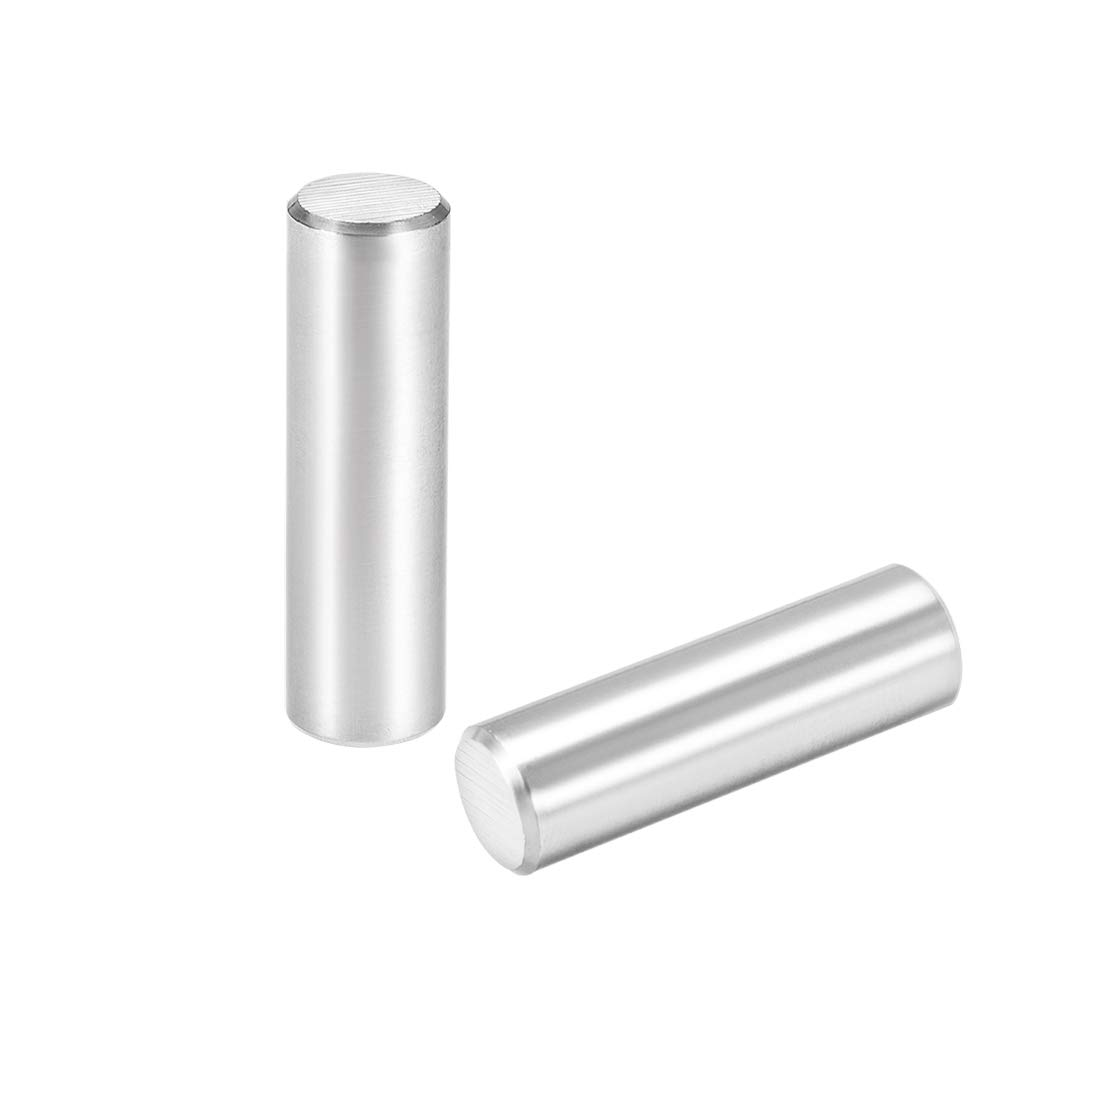 """uxcell 12 x 40mm(Approx 15/32"""") Dowel Pin 304 Stainless Steel Wood Bunk Bed Dowel Pins Shelf Pegs Support Shelves 2Pcs"""